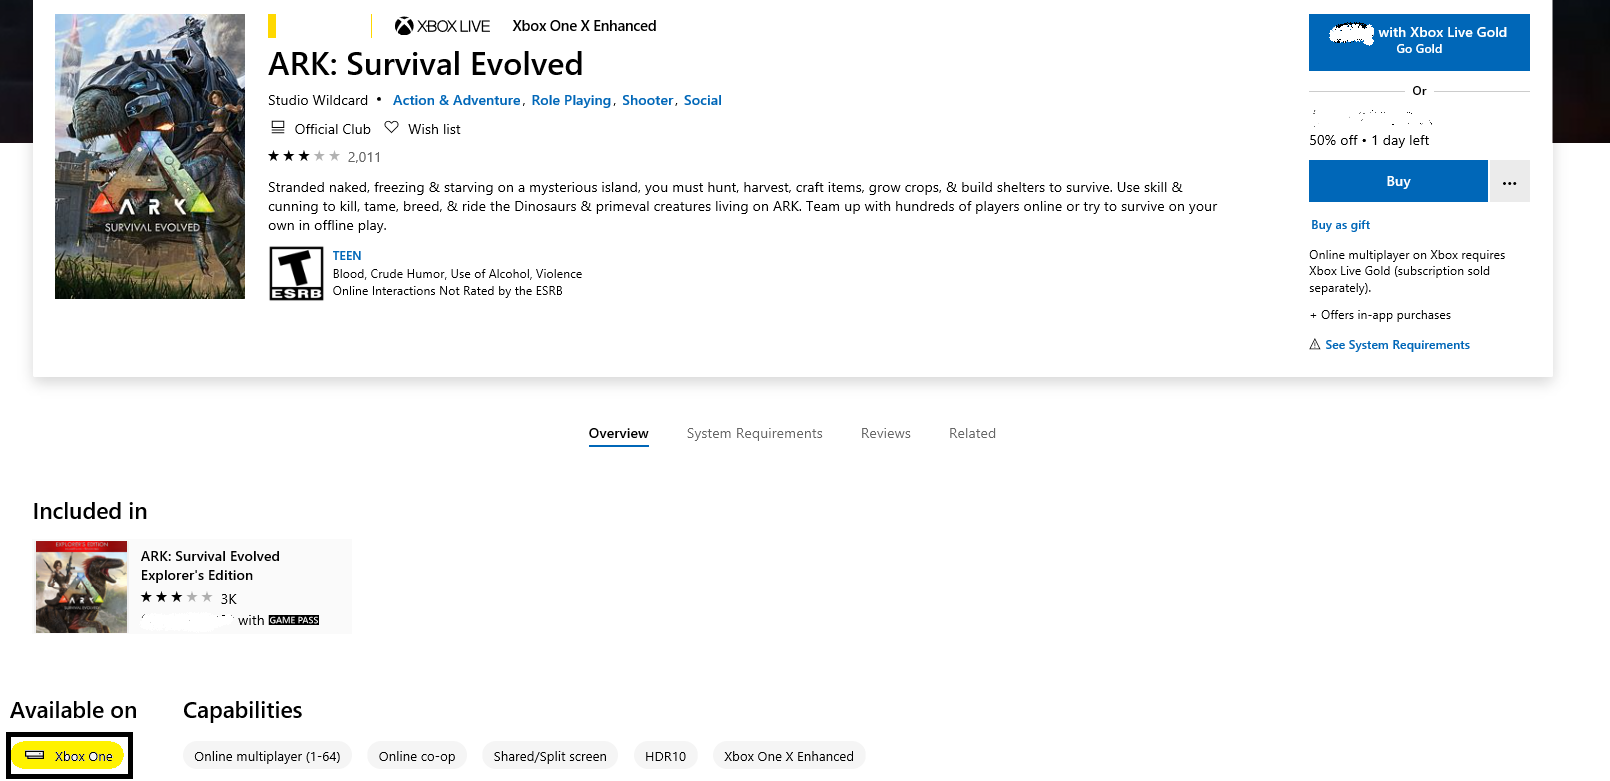 Ark Survival Evolved On Microsoft Store Wont Open Please Help. 3f3e8035-d45a-4794-8581-6ba2c23f8874?upload=true.png